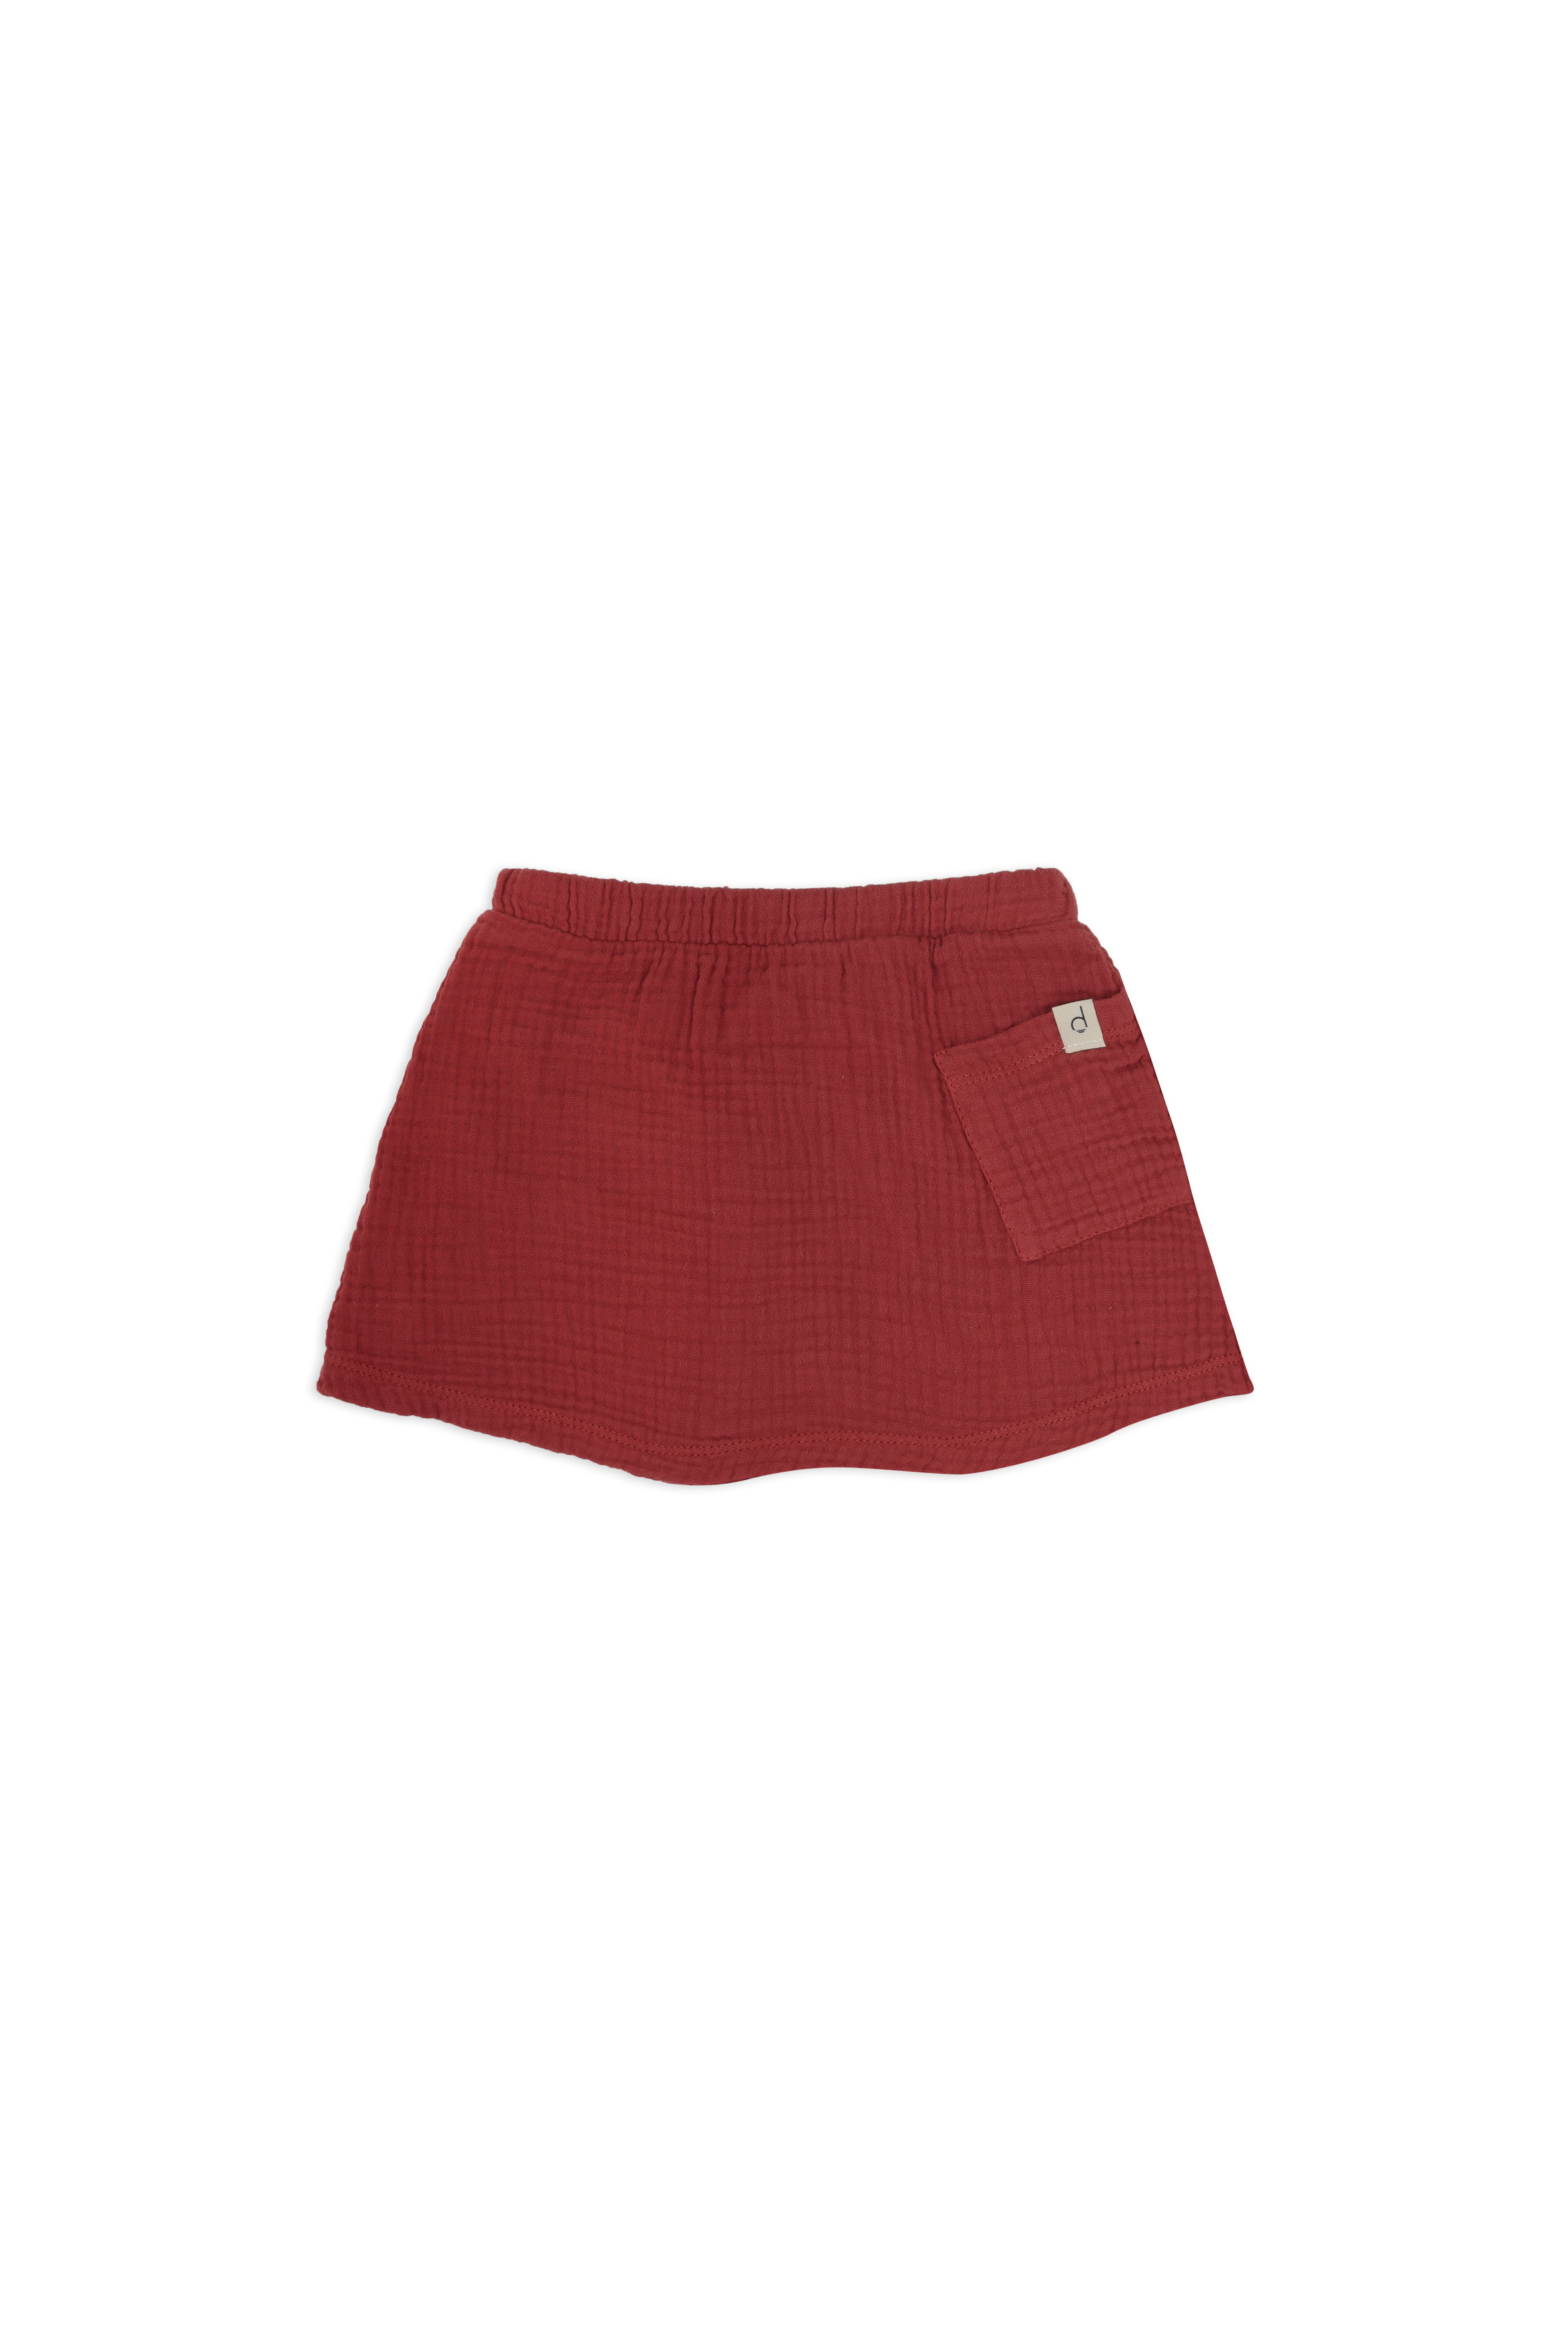 Baby-skirt-clay-red